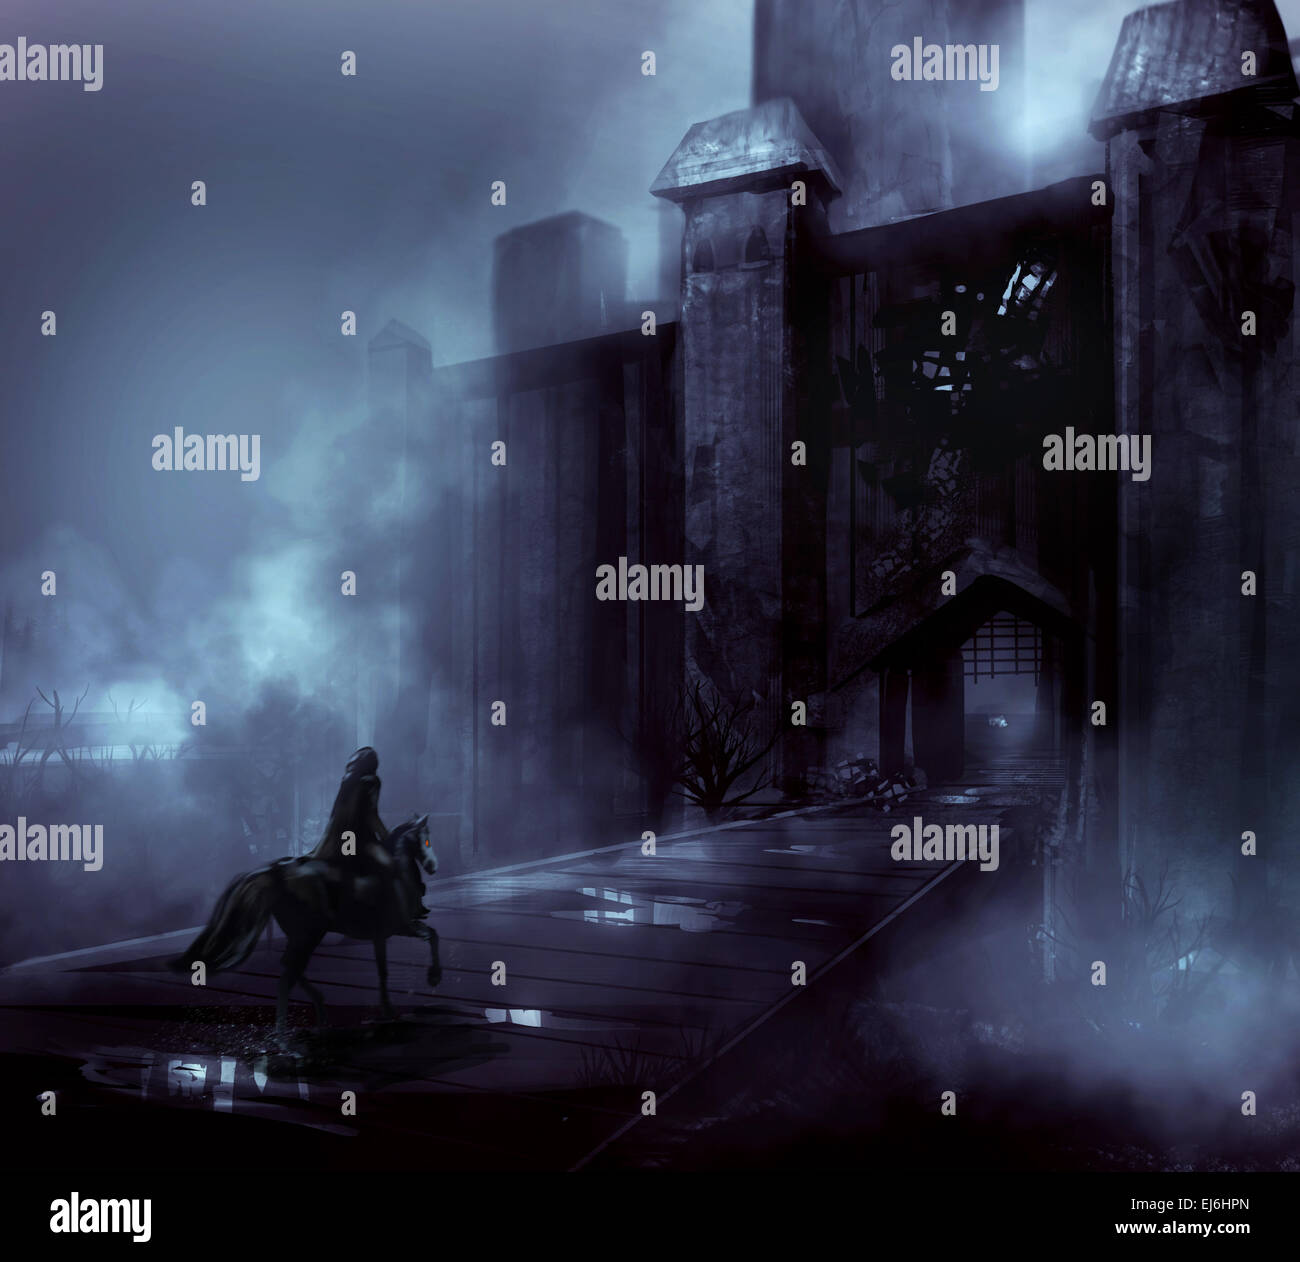 Scary Night Castle In Fog With Fantasy Horseman Riding On A Wooden Bridge Illustration